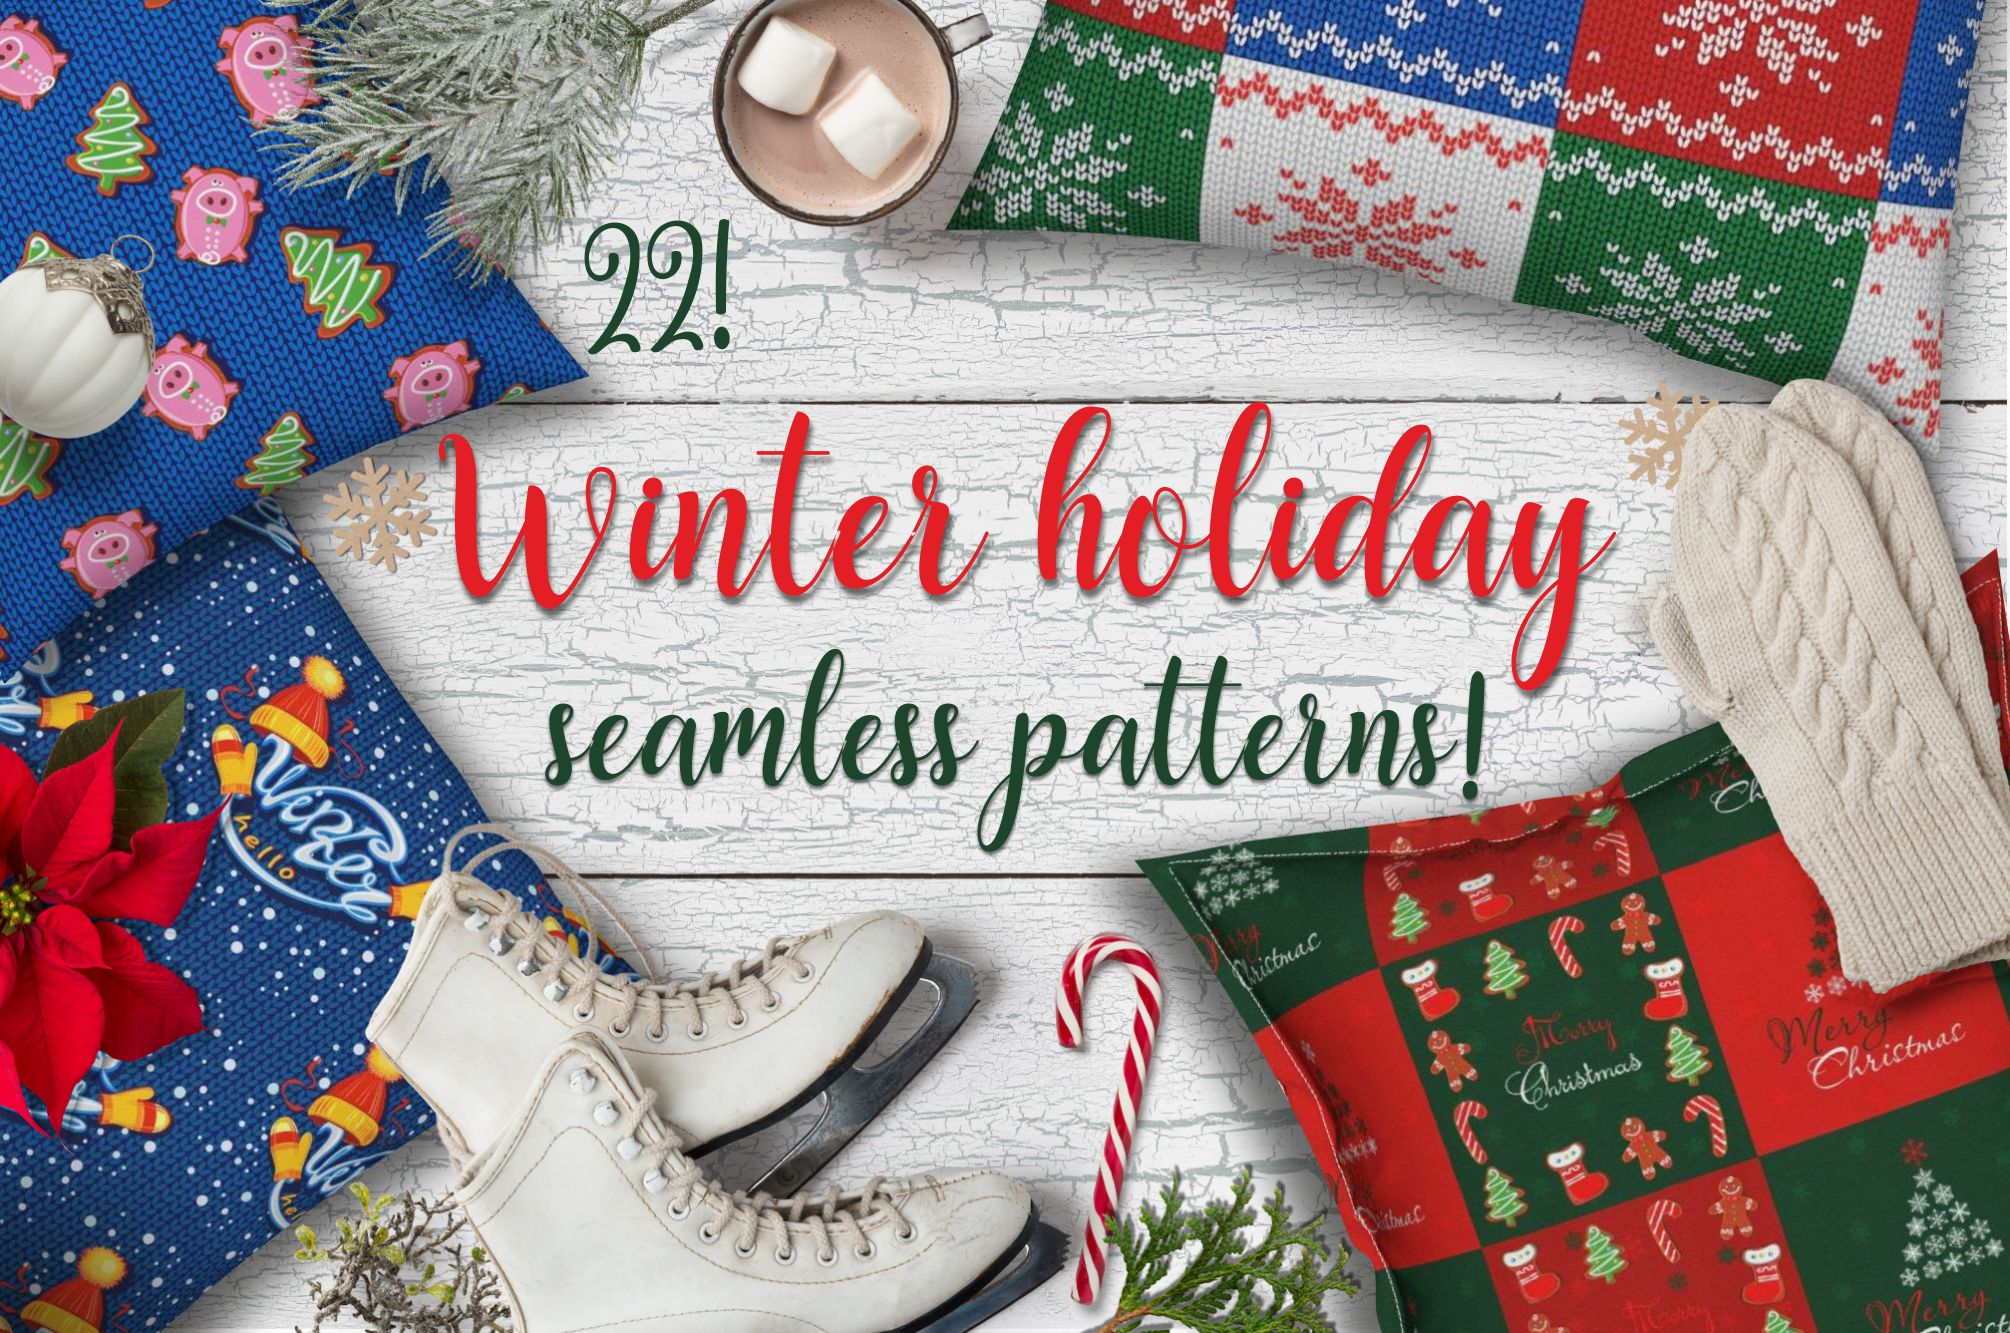 Winter Holiday Patterns Christmas Mood Graphic By Grigaola